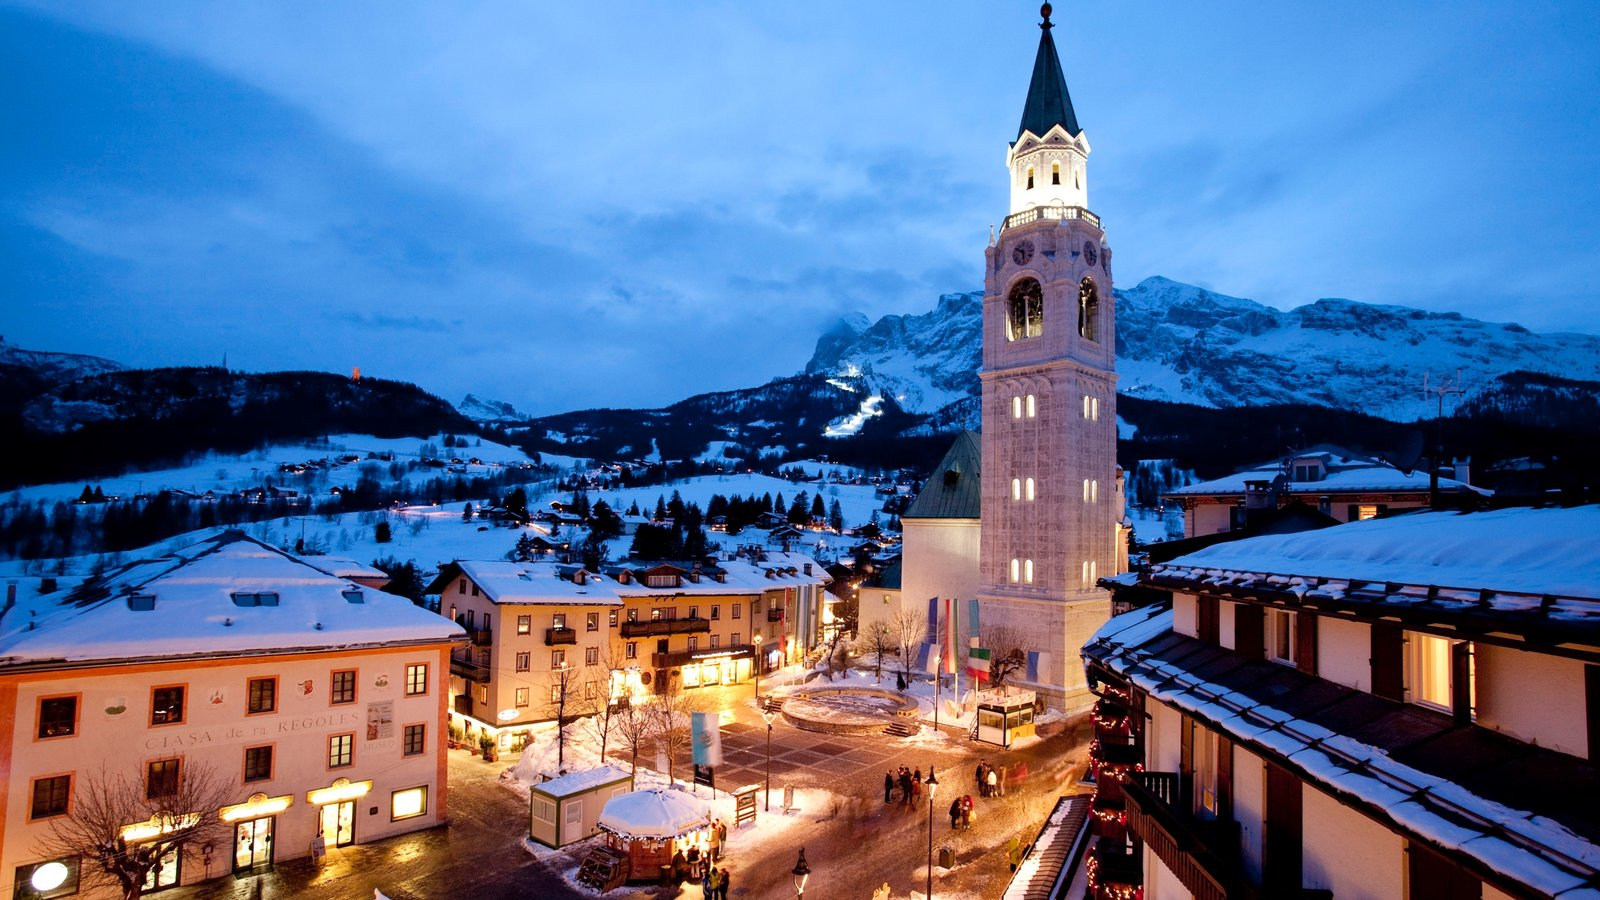 Cortina d\'Ampezzo which includes a church or cathedral, snow and a small town or village